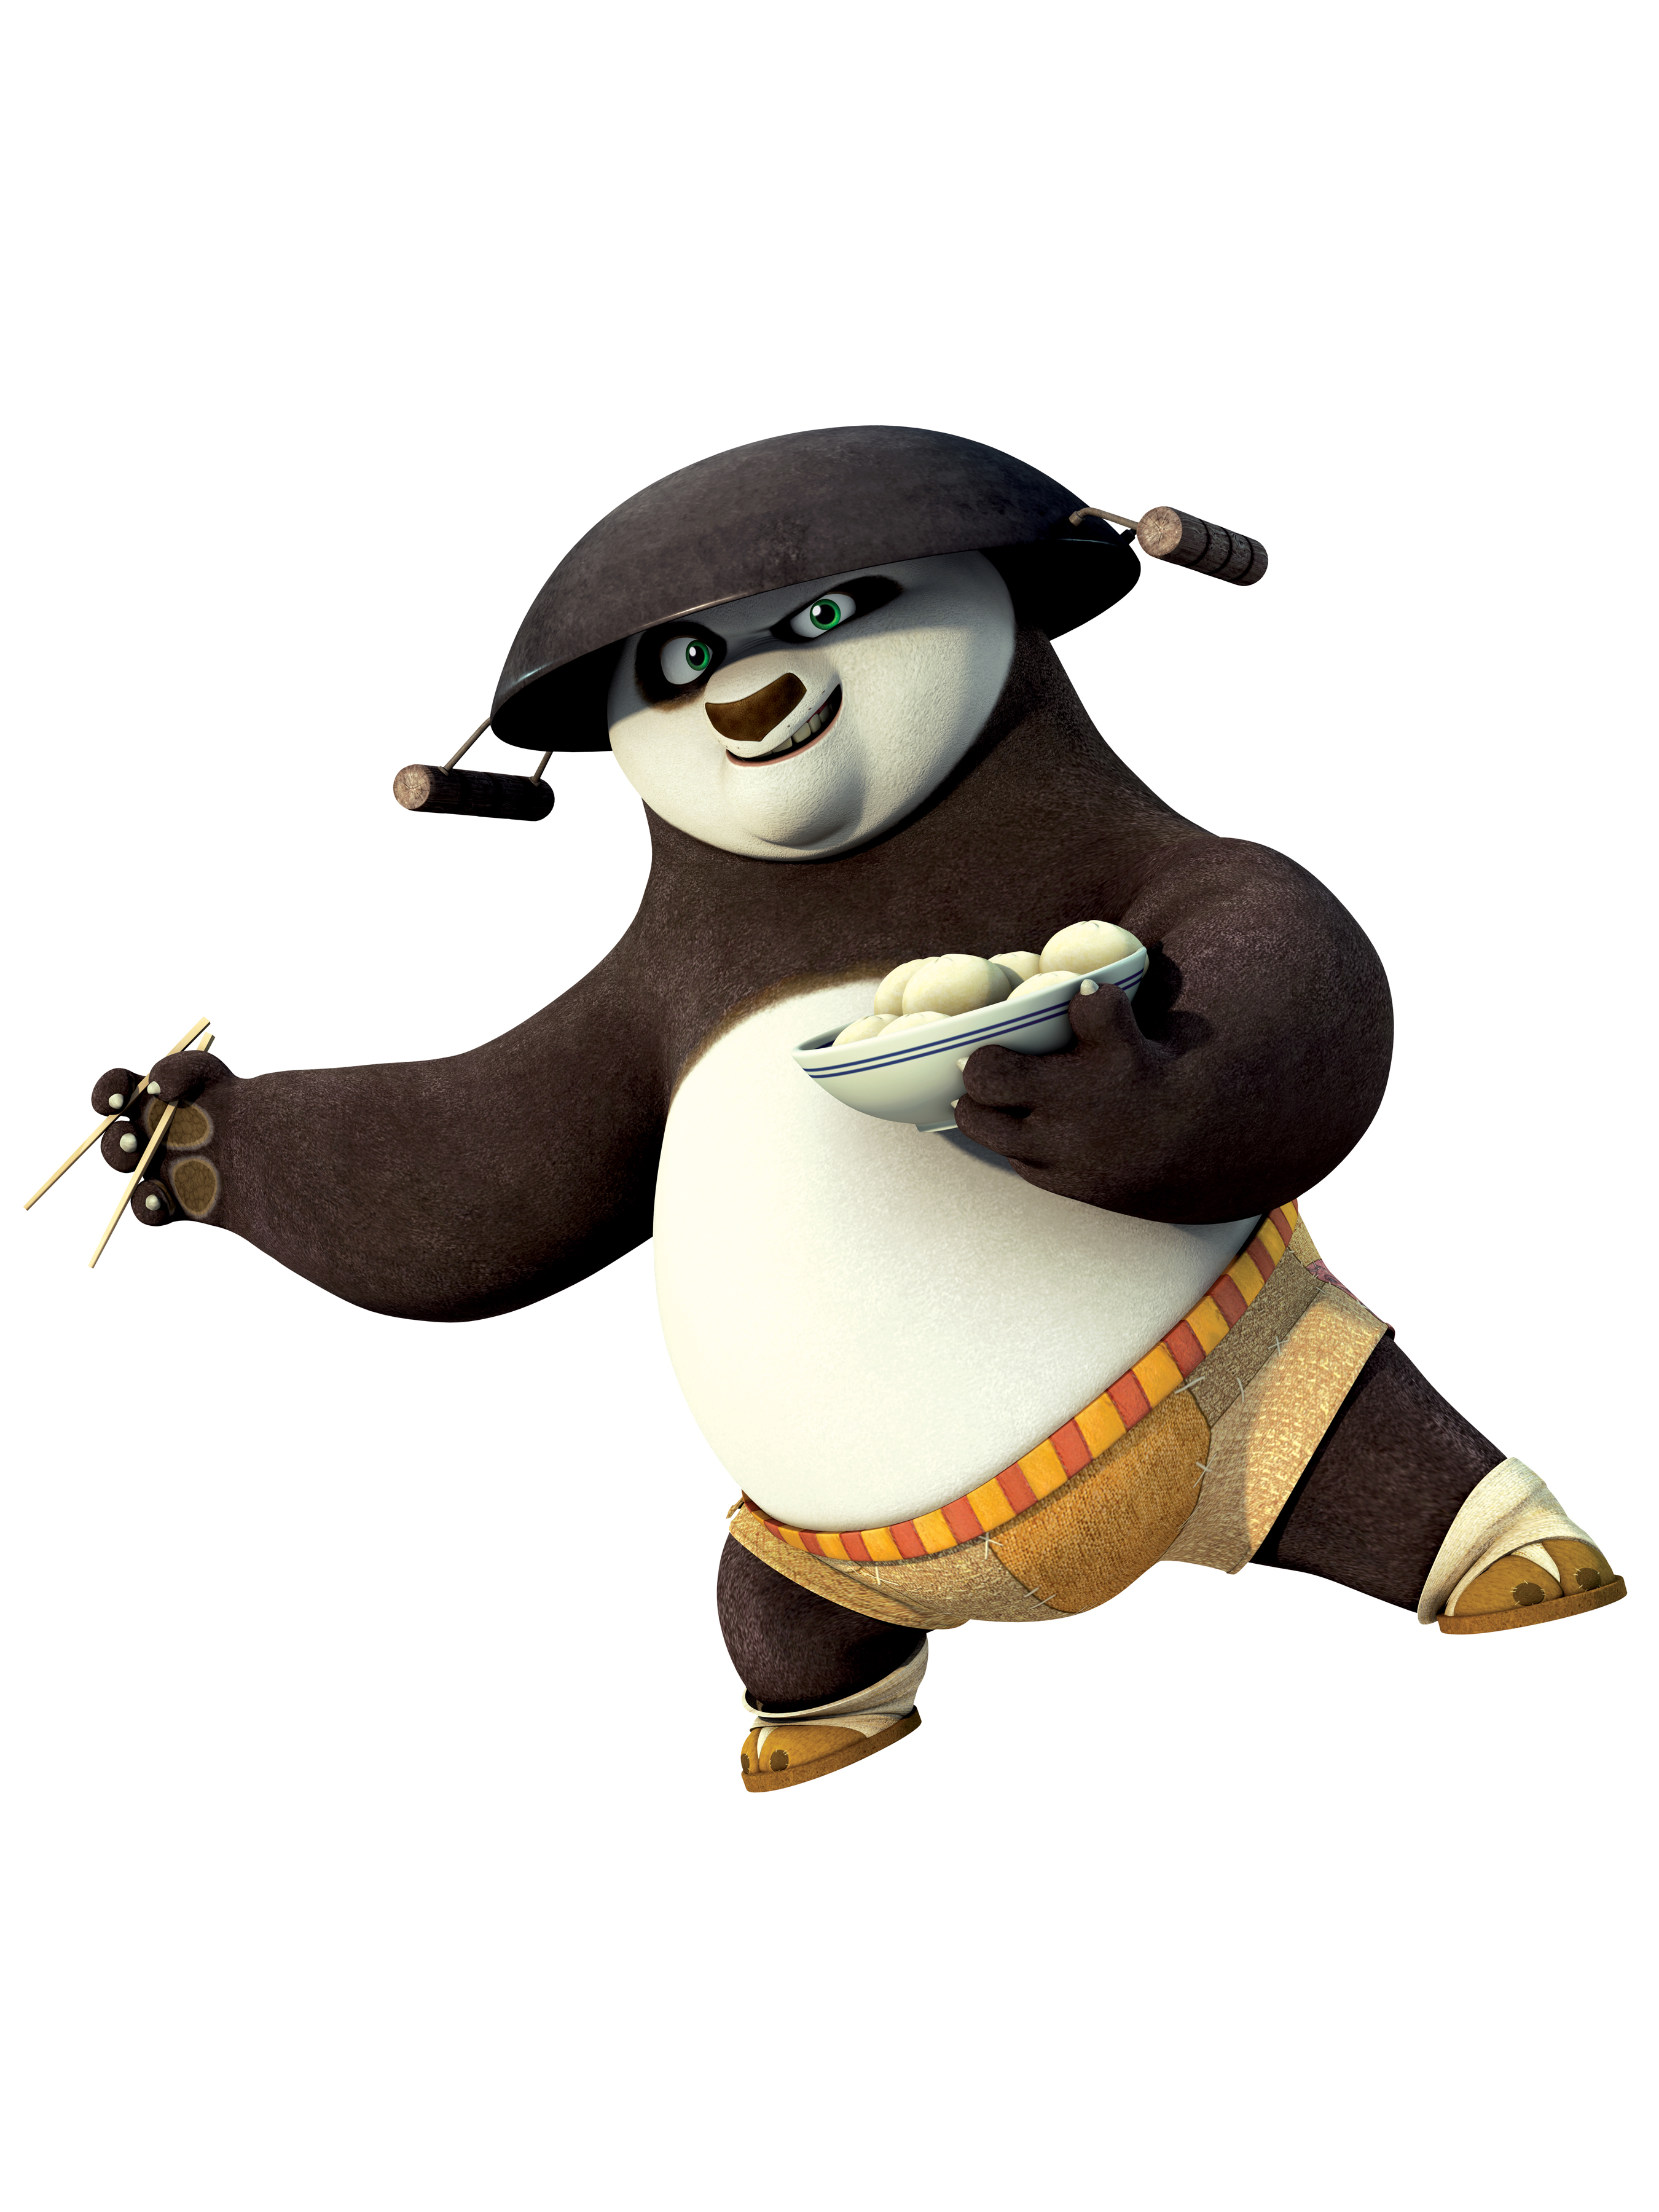 Kung fu Panda Characters hd Wallpapers images